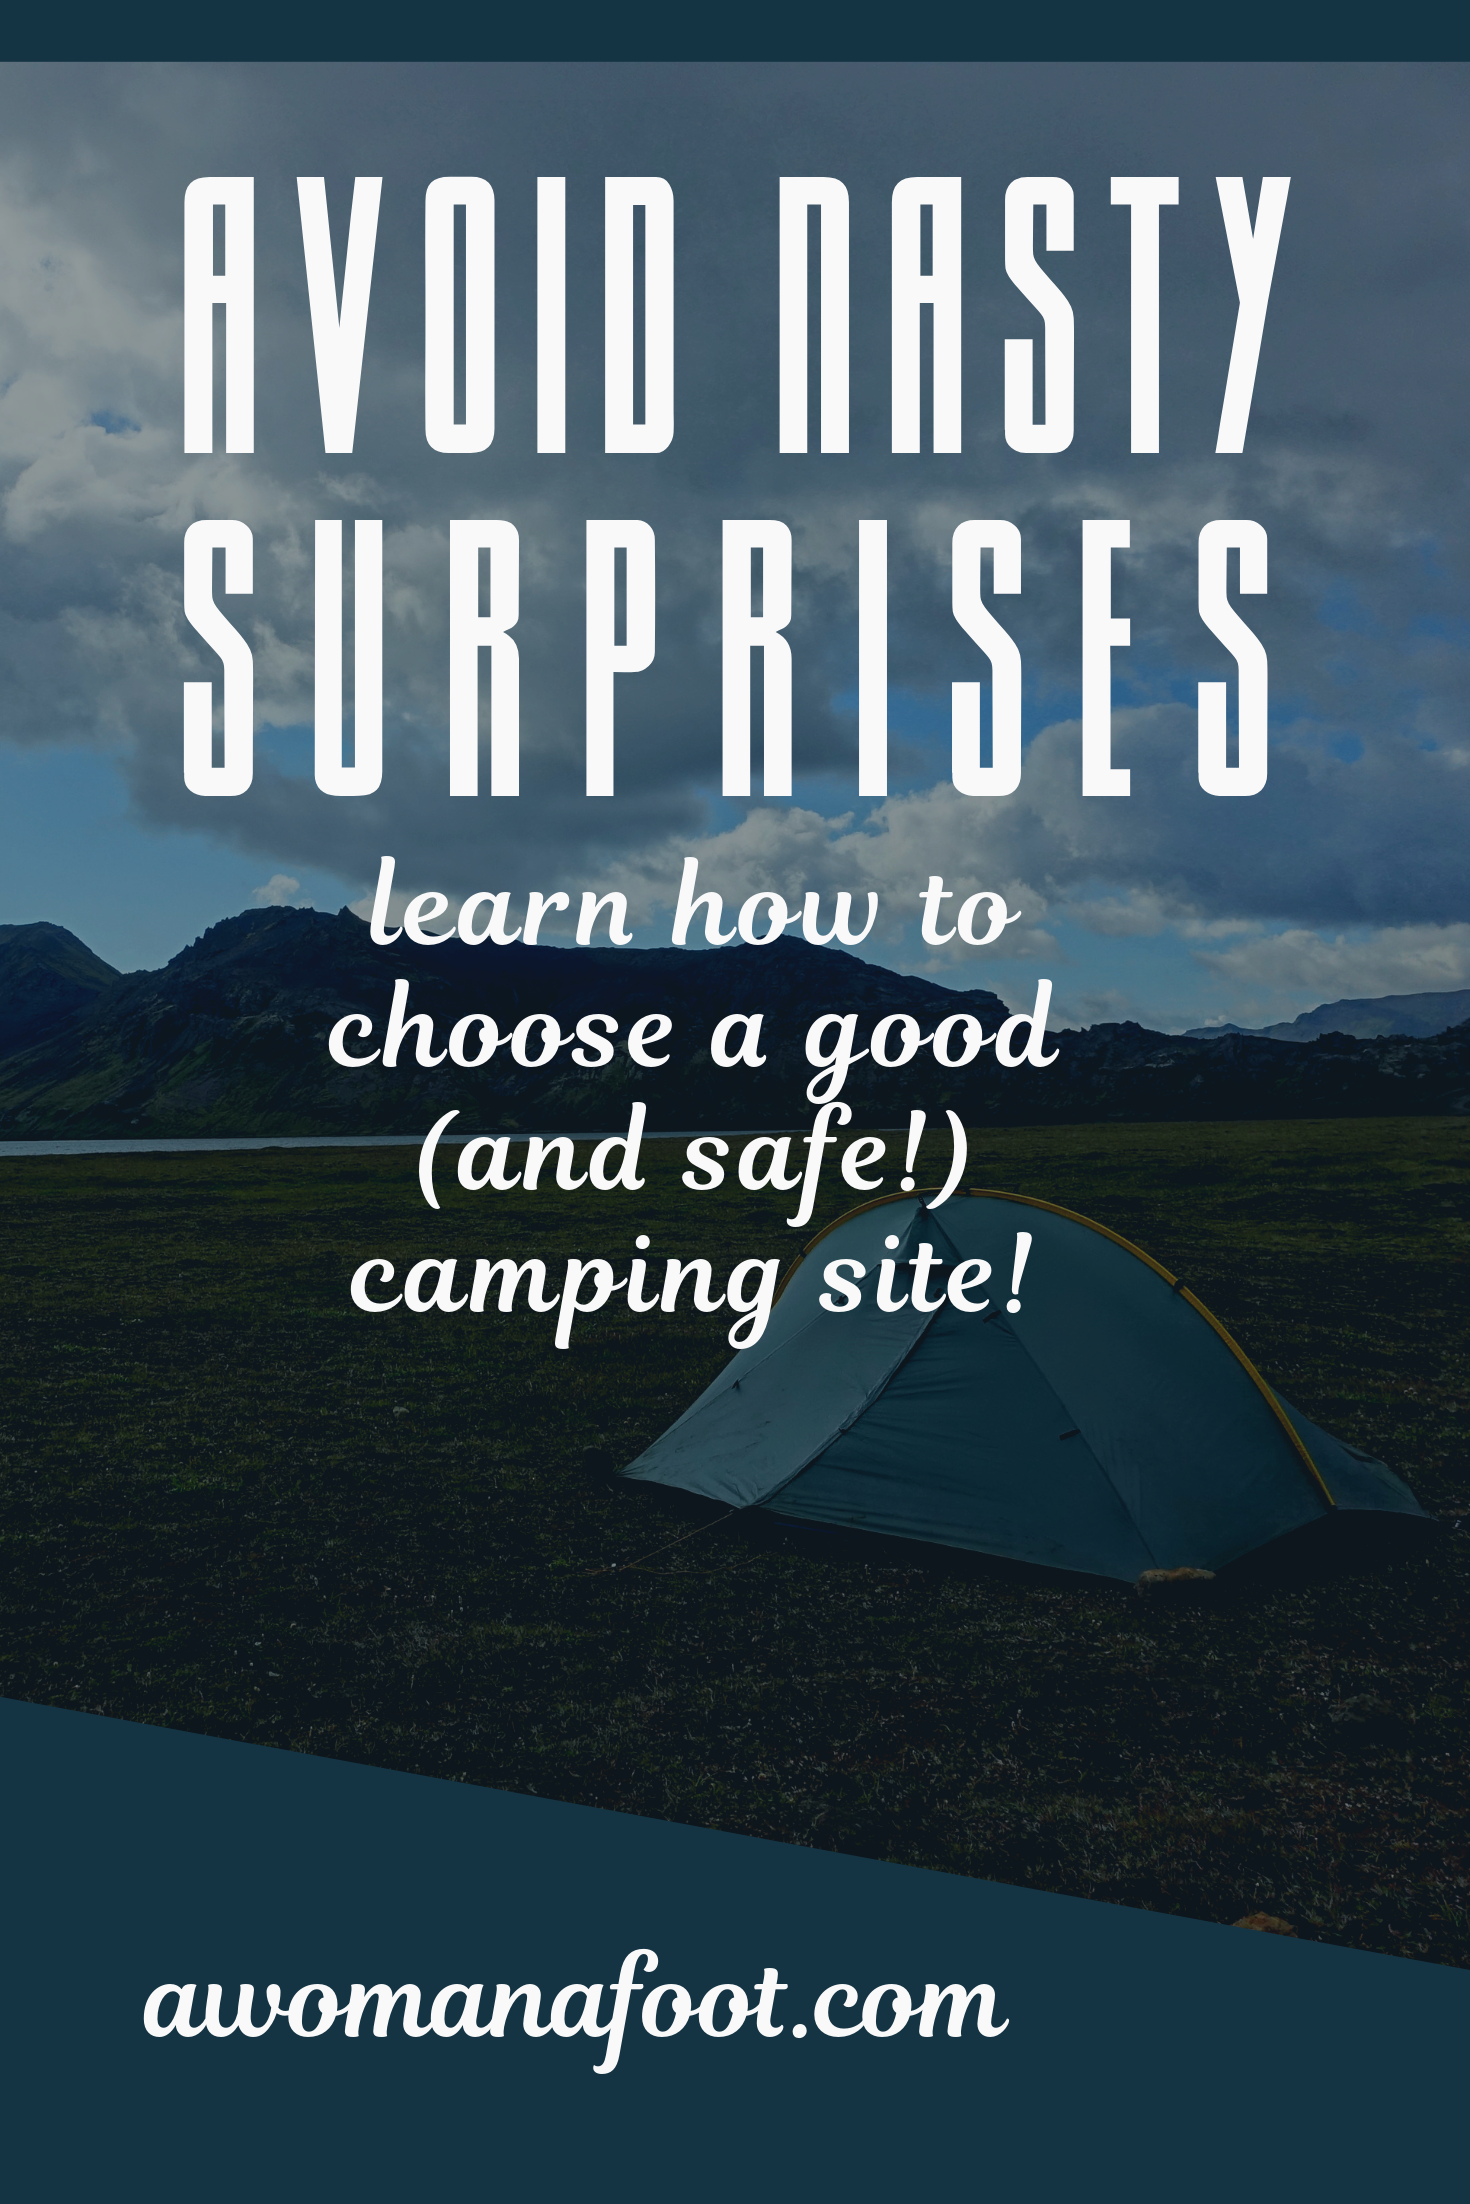 Finding a good campsite is a must for a safe and comfortable sleep. But what makes a good campsite? Learn all about the characteristics of a good campsite, safety tips, finding the right spot on an established campsite and while wild camping @ awomanafoot.com! Wild camping for beginners | Stealth camping | Backpacking & hiking | Adventure travel | Overnight hiking | Leave No Trace | Responsible travel | Hiker Safety | #Camping #Backpacking #Campsite #Hiking #WildCamping